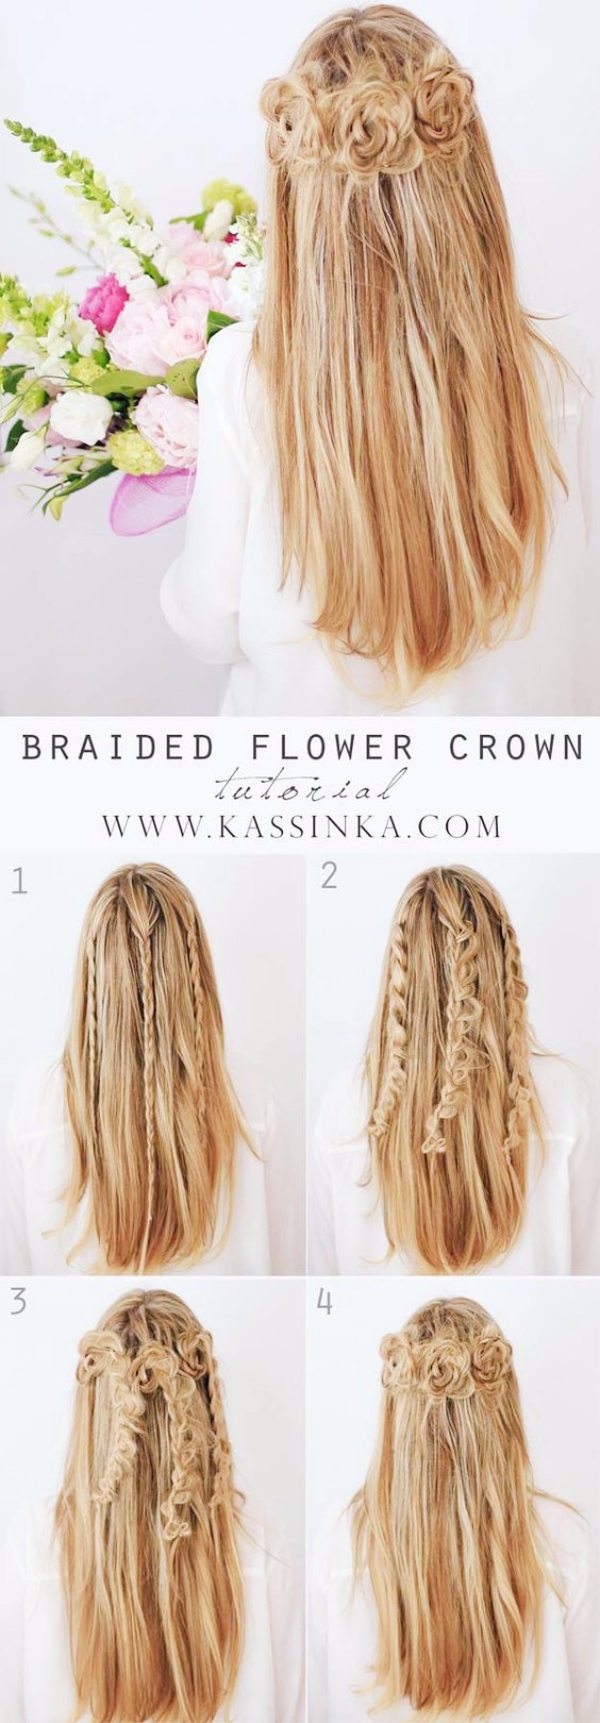 43 Bohemian Hairstyle Tutorials to Set Yourself Free ...